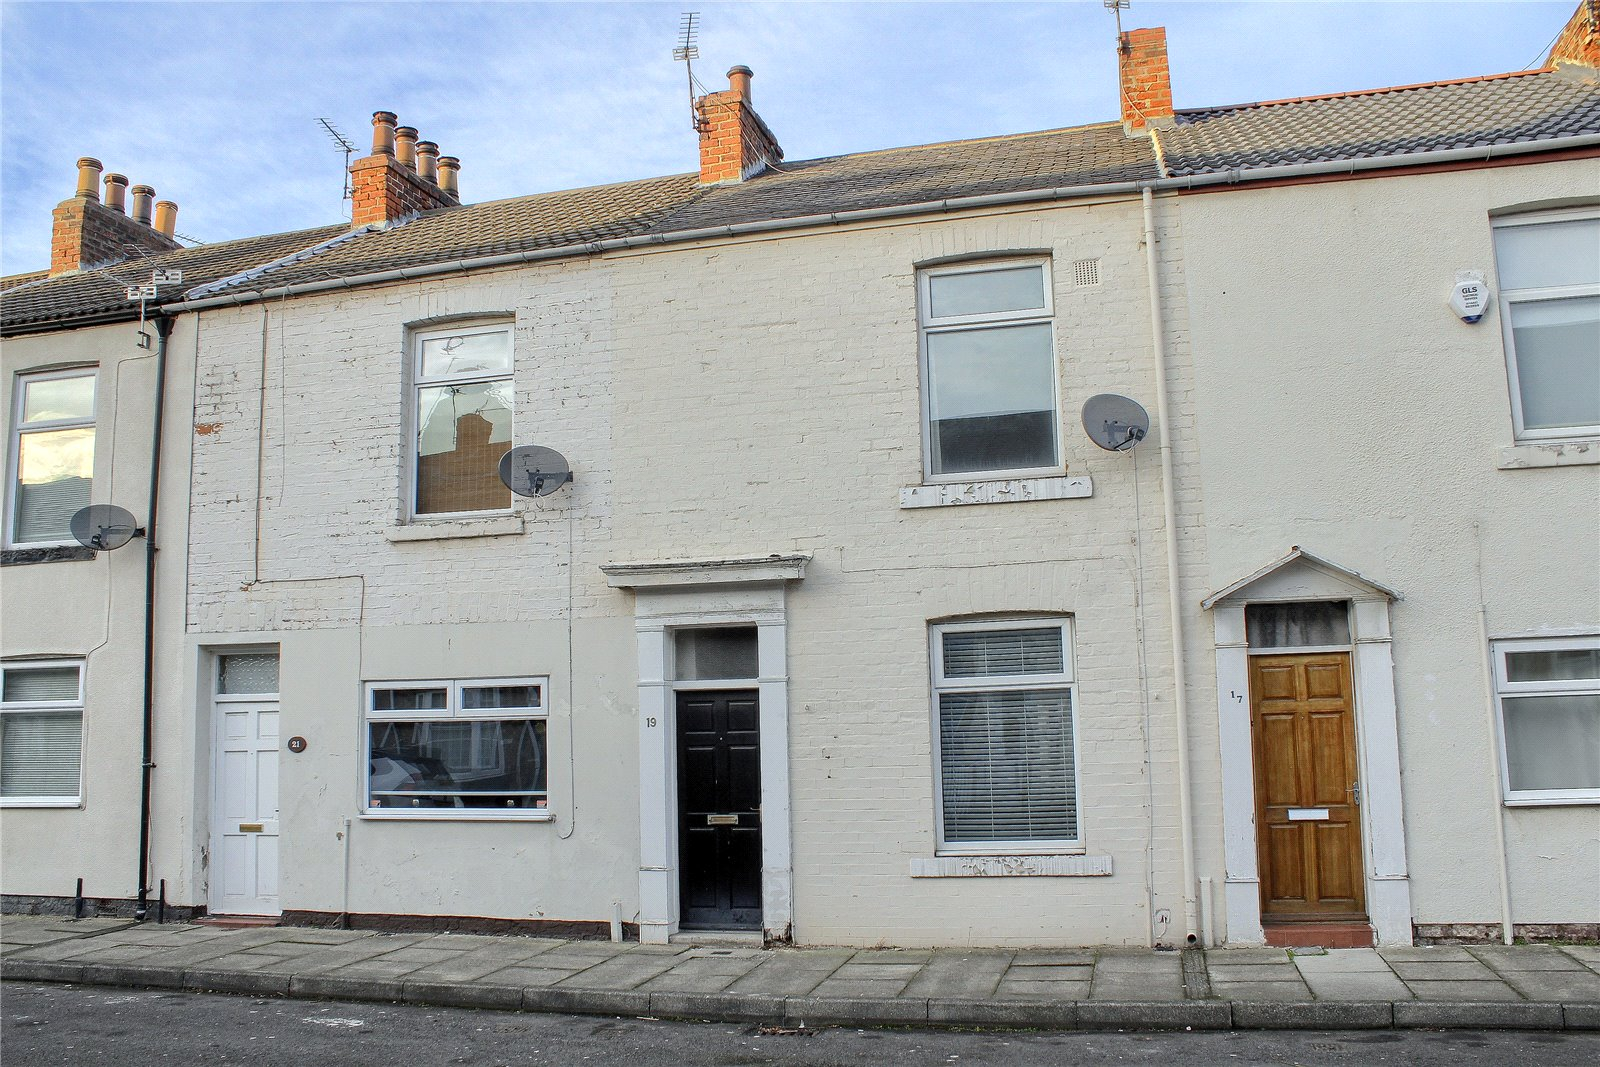 2 bed house for sale in Benson Street, Linthorpe - Property Image 1